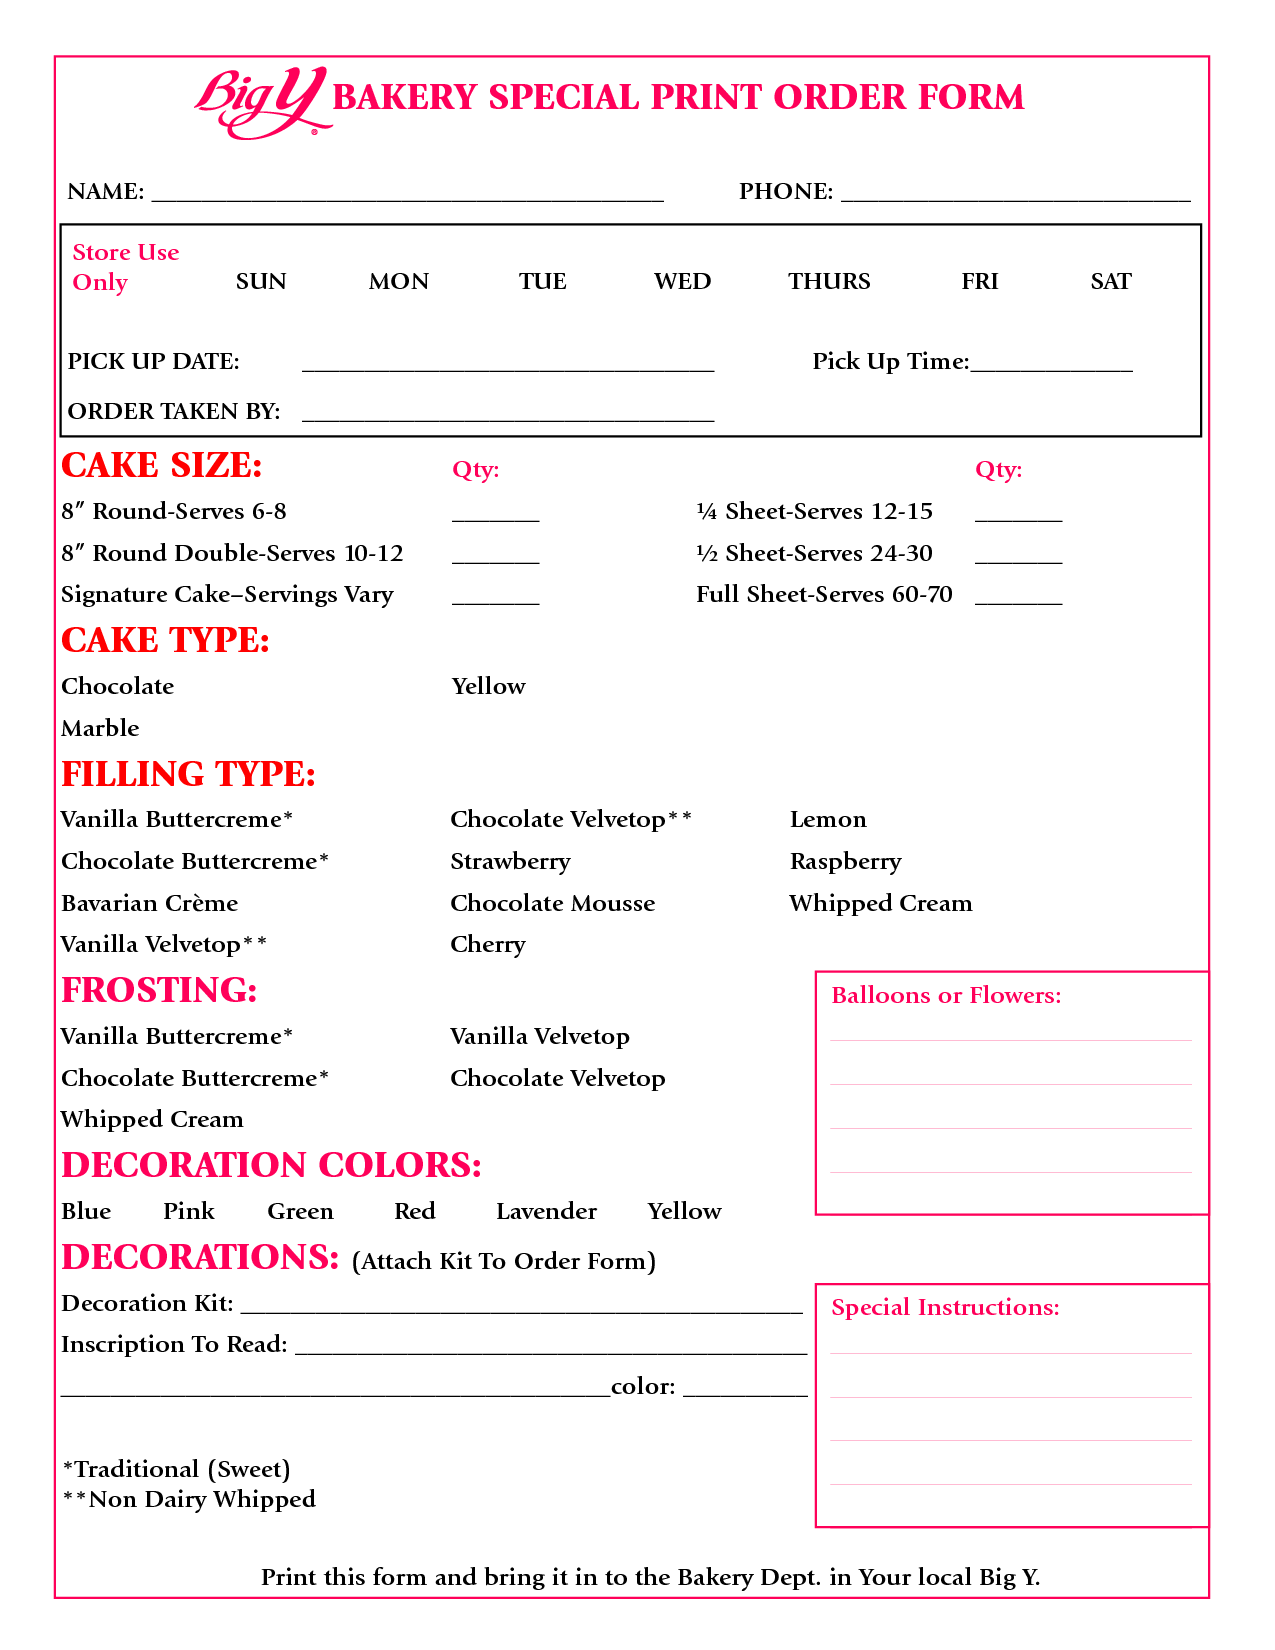 Bakery Order Form Template Excel from i.pinimg.com